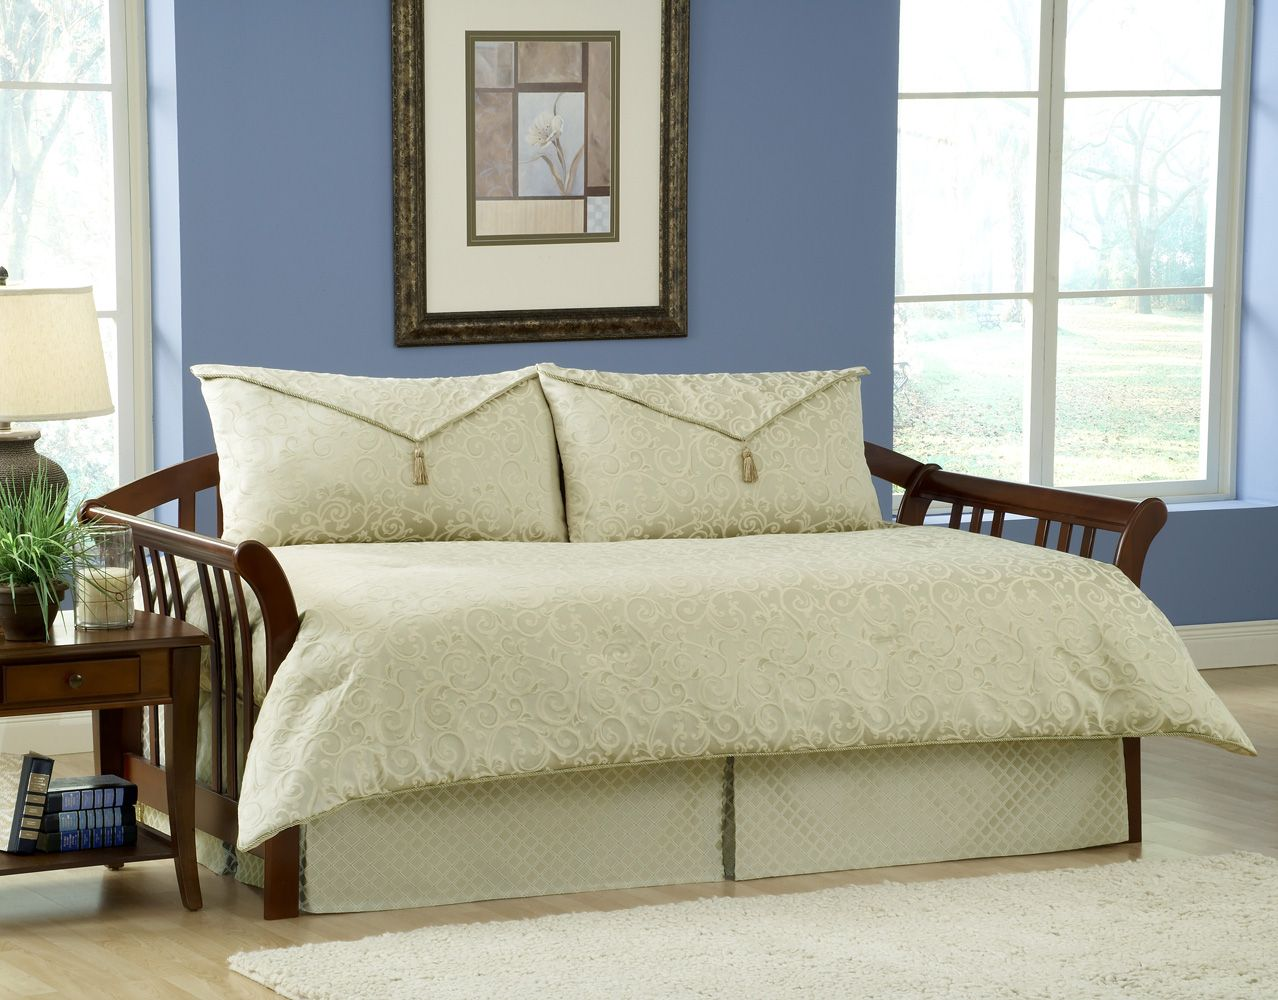 Paramount Impressions Daybed Ensemble A Touch Of Class For A